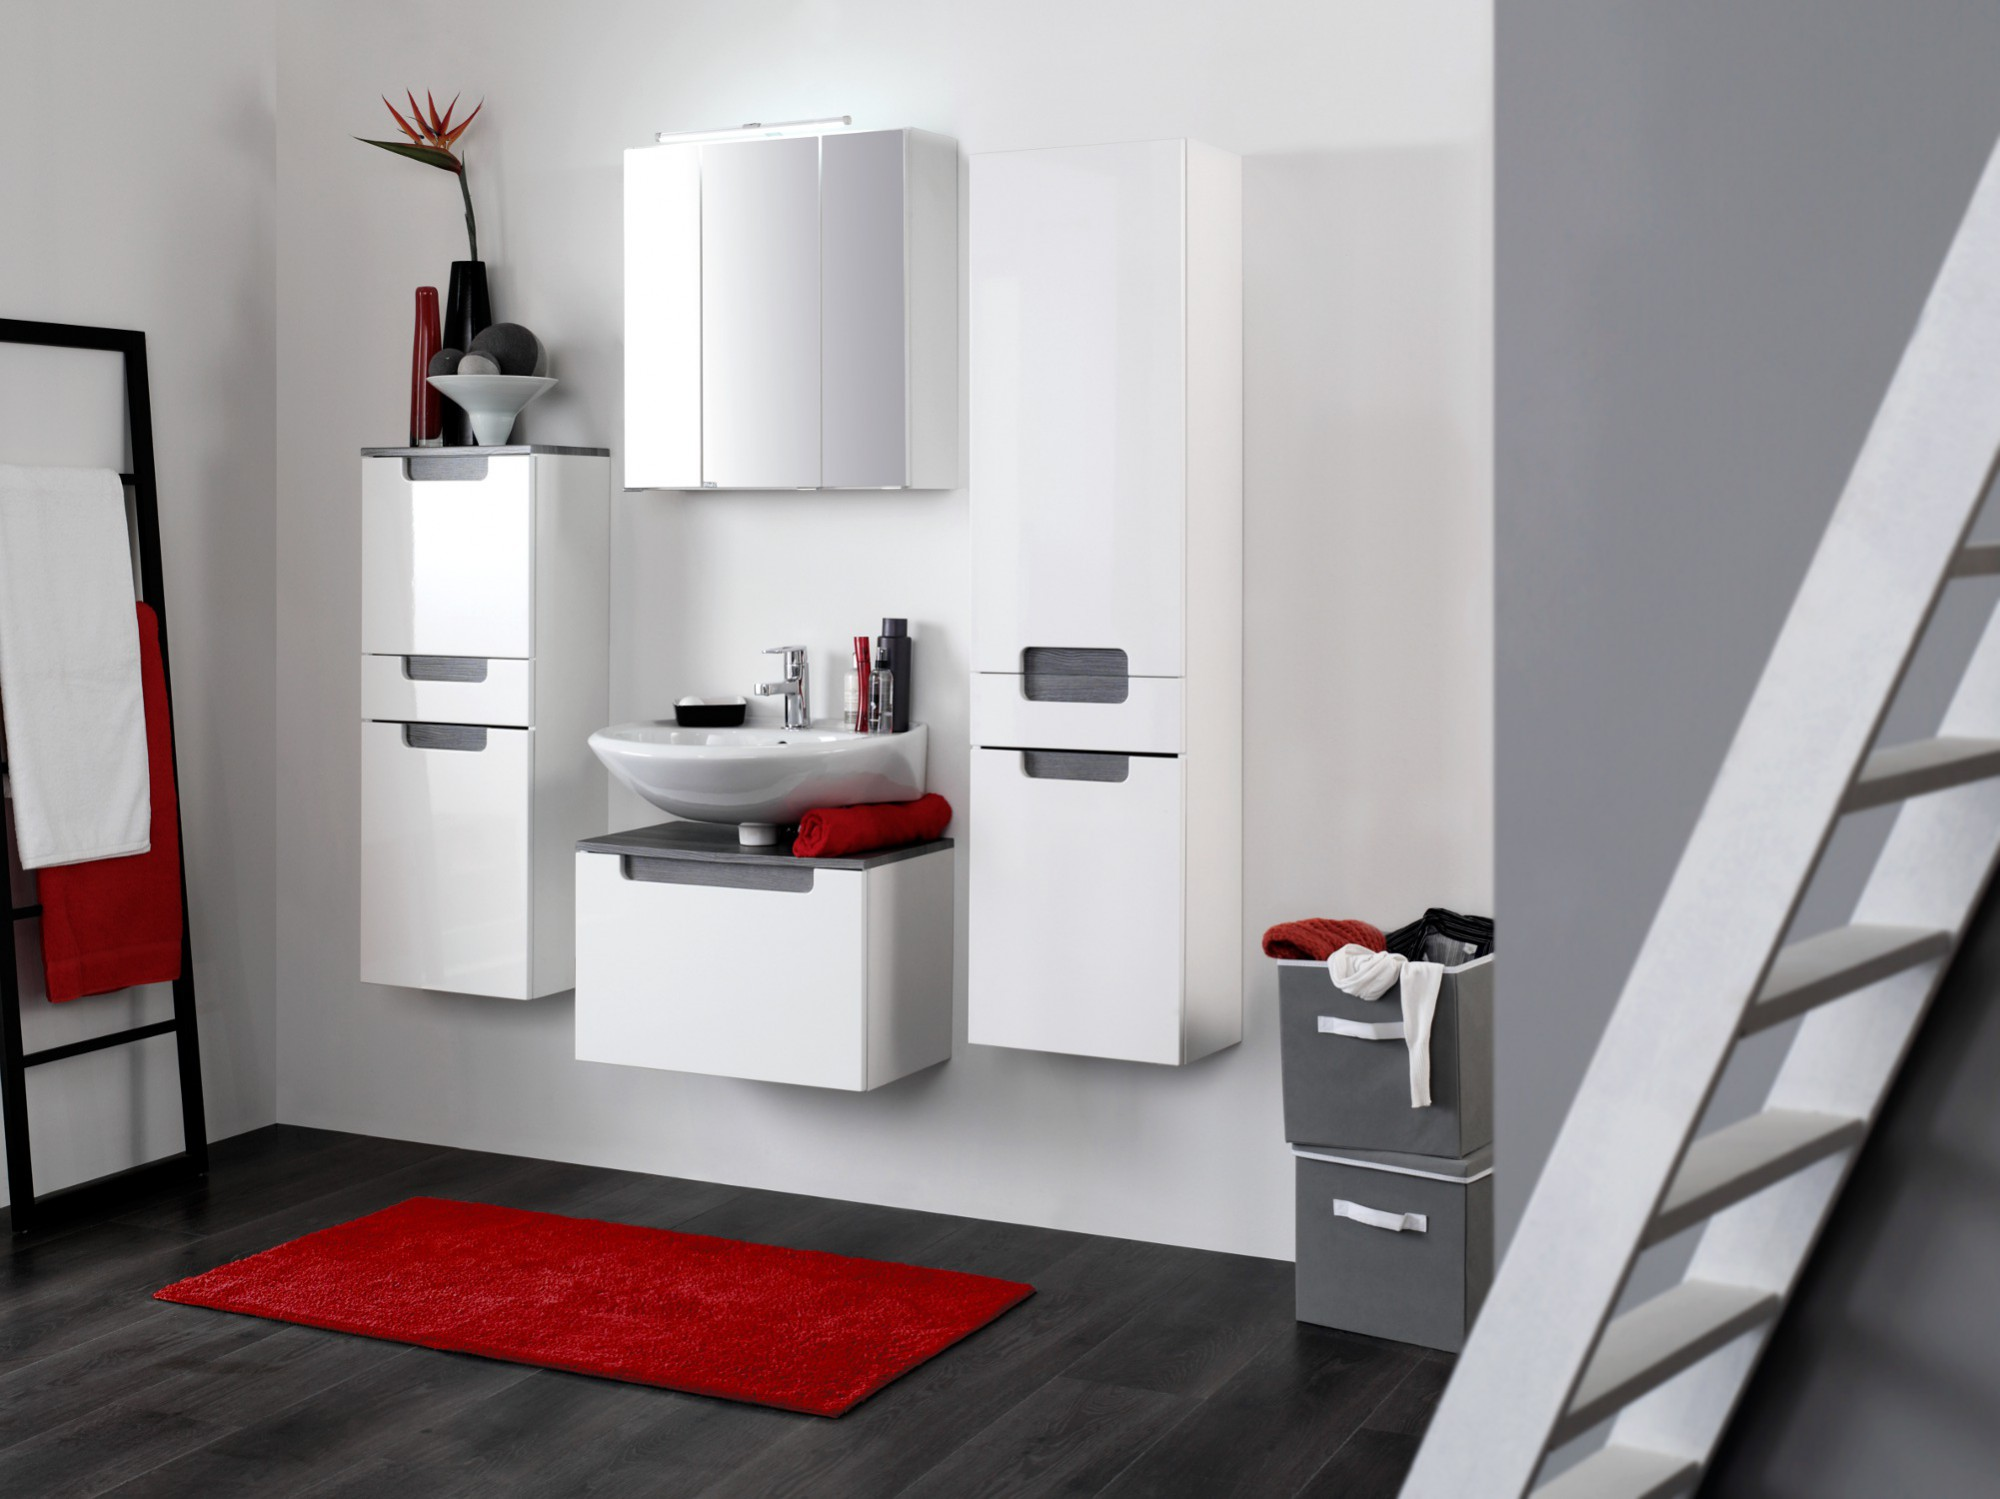 bad midischrank siena 2 t rig 1 schublade 40 cm breit hochglanz wei rauchsilber bad siena. Black Bedroom Furniture Sets. Home Design Ideas